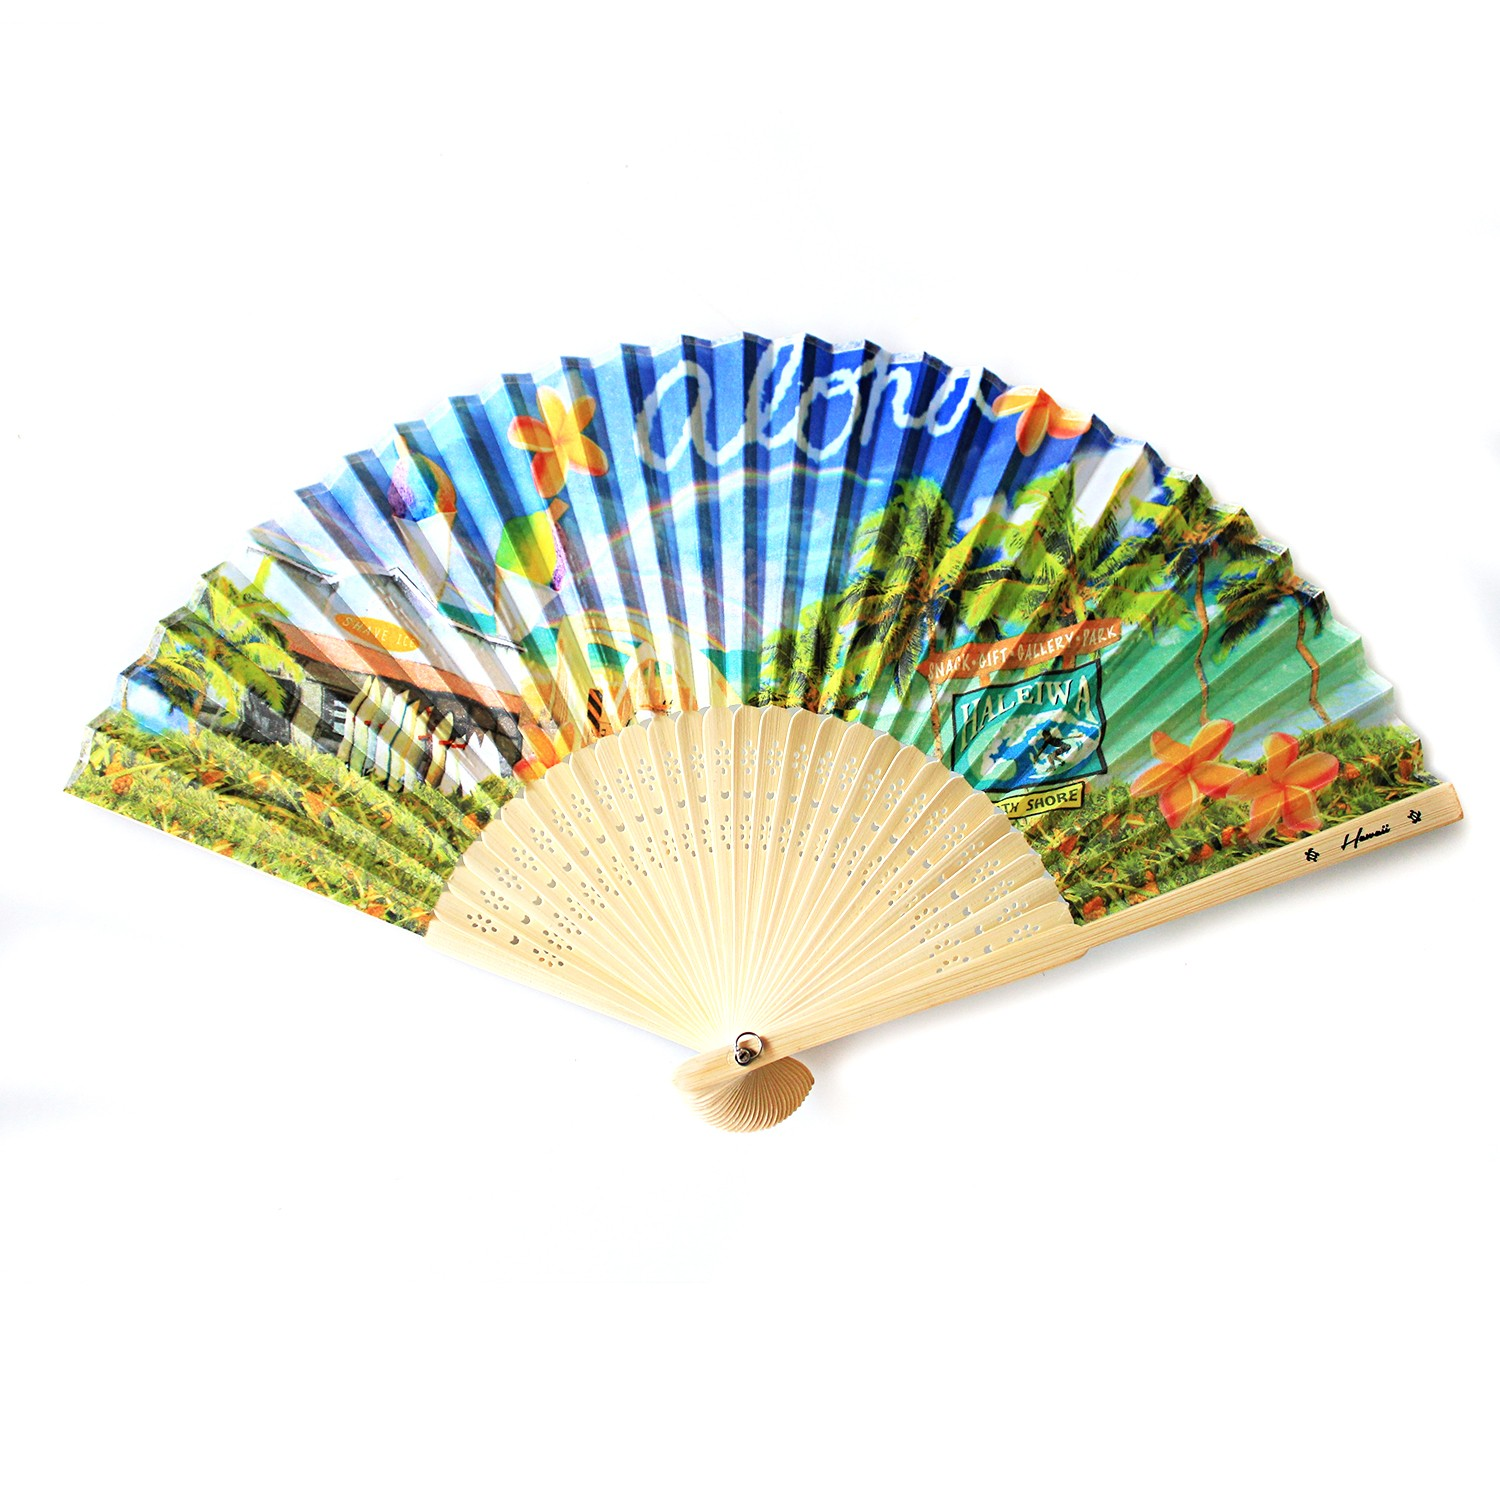 Hawaii Luau Party Favors Wedding Fabric & Wood Folding Hand Fan in Haleiwa